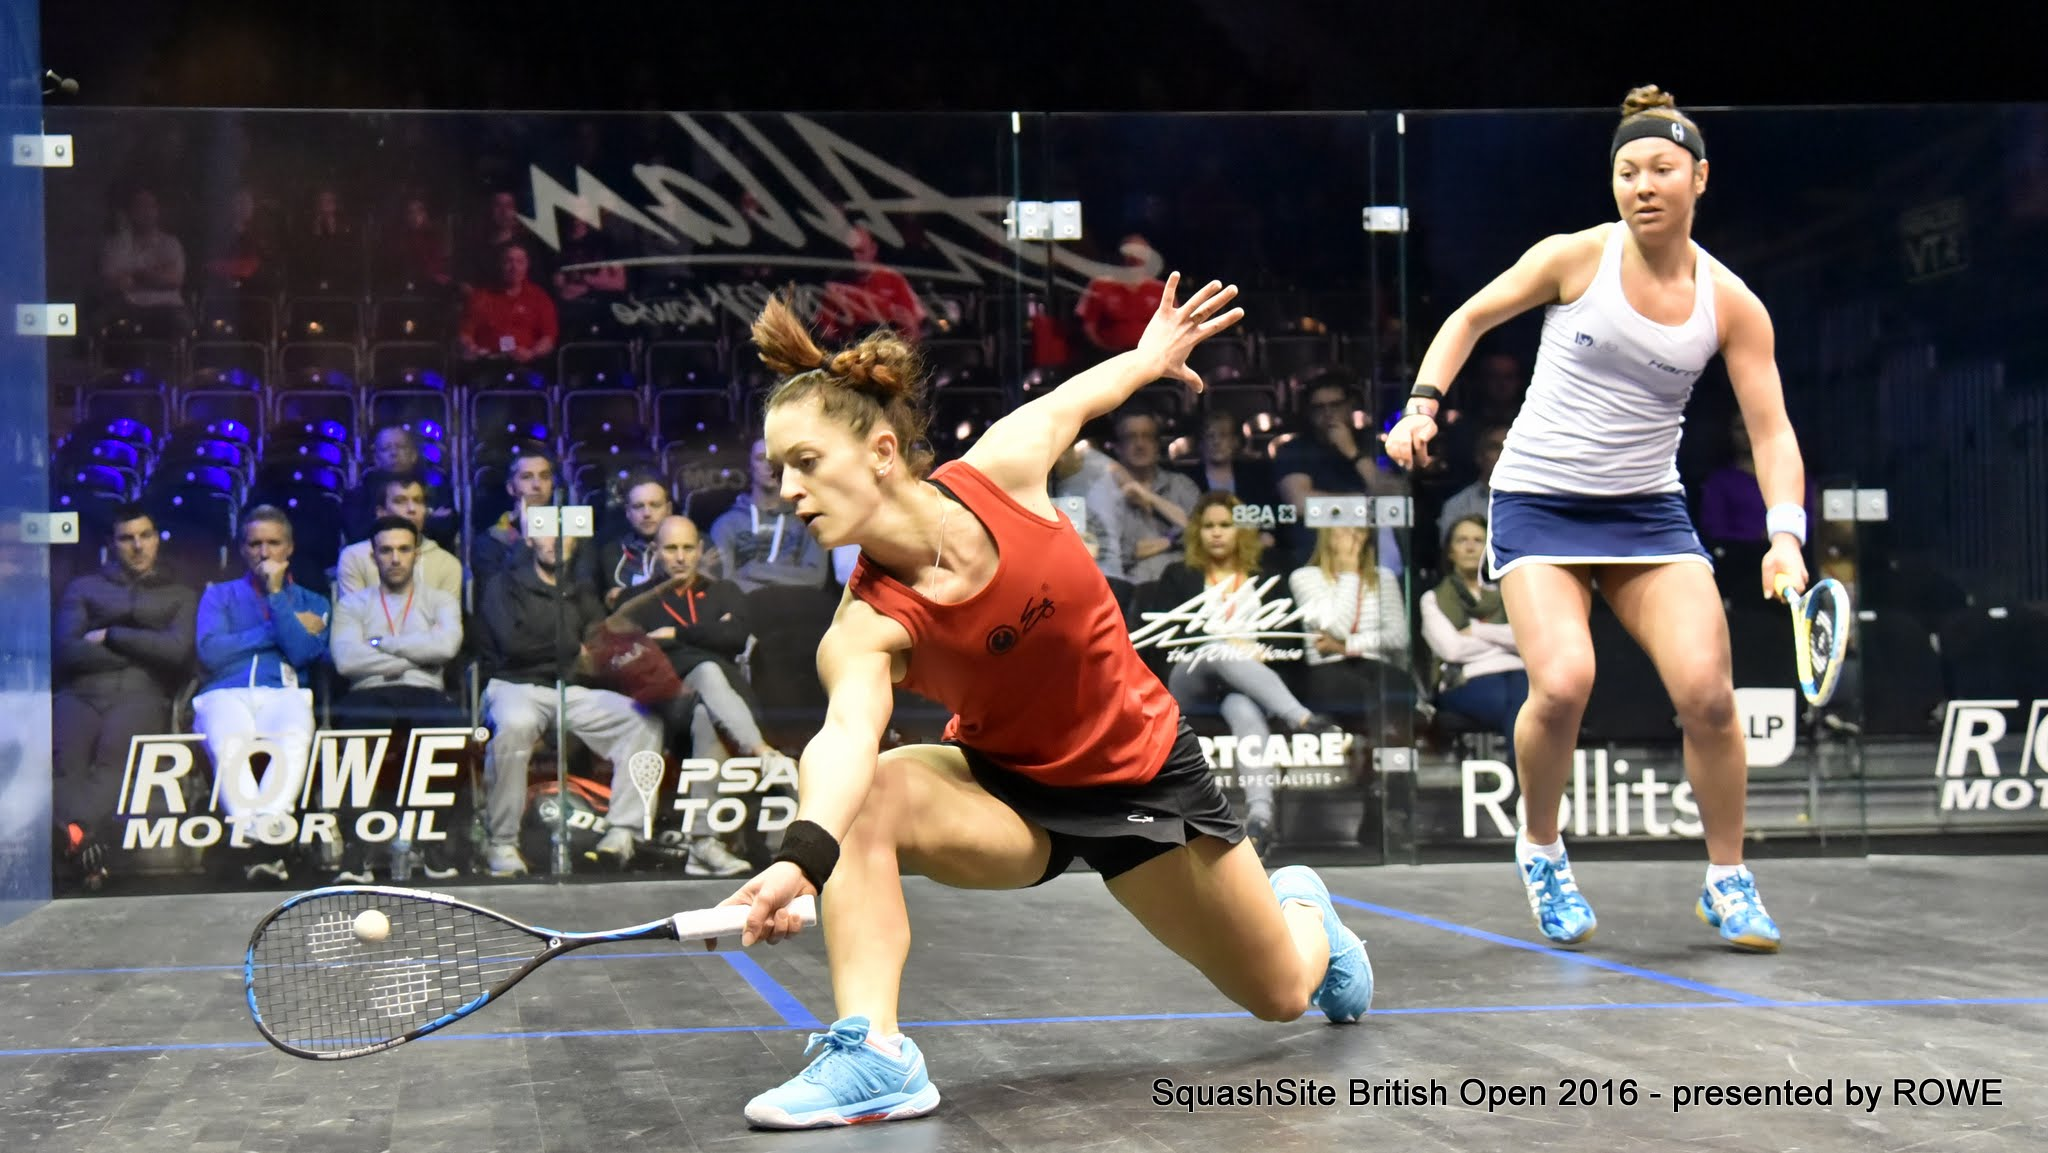 Coline Aumard 2016 British Open